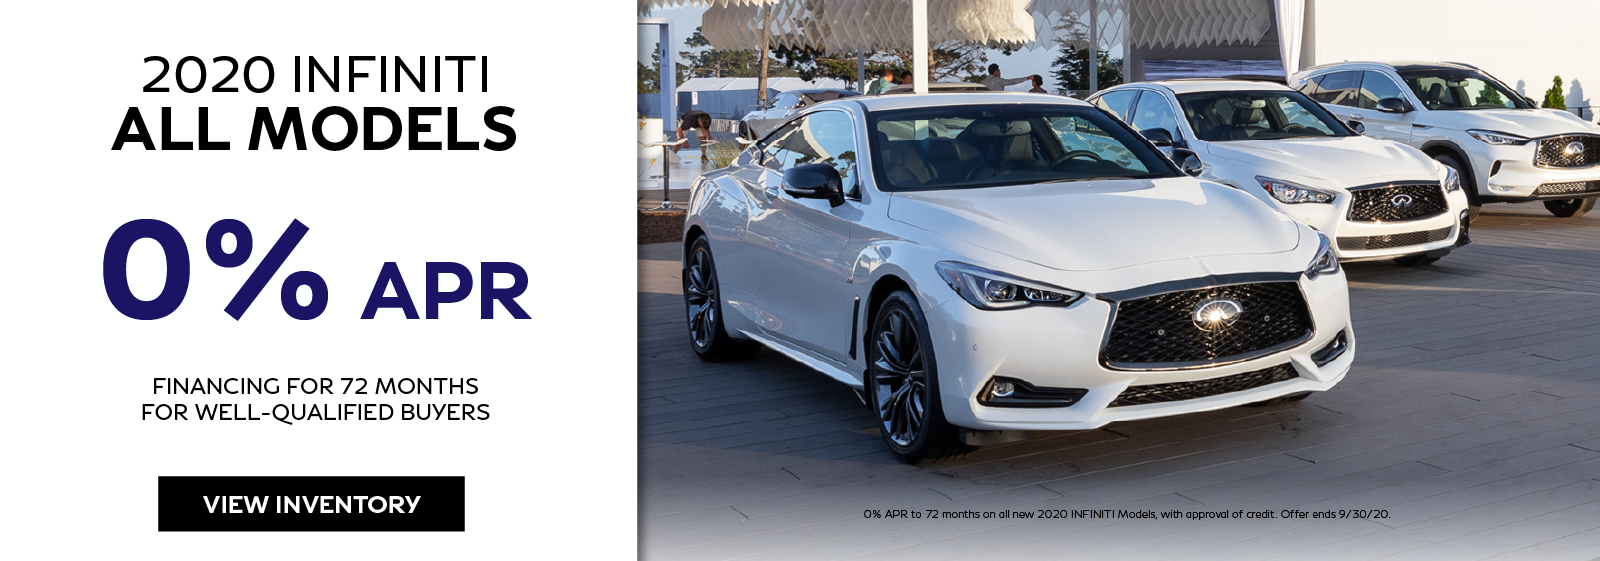 Well qualified buyers can get 0% APR financing on any new 2020 INFINITI. Click to view inventory.